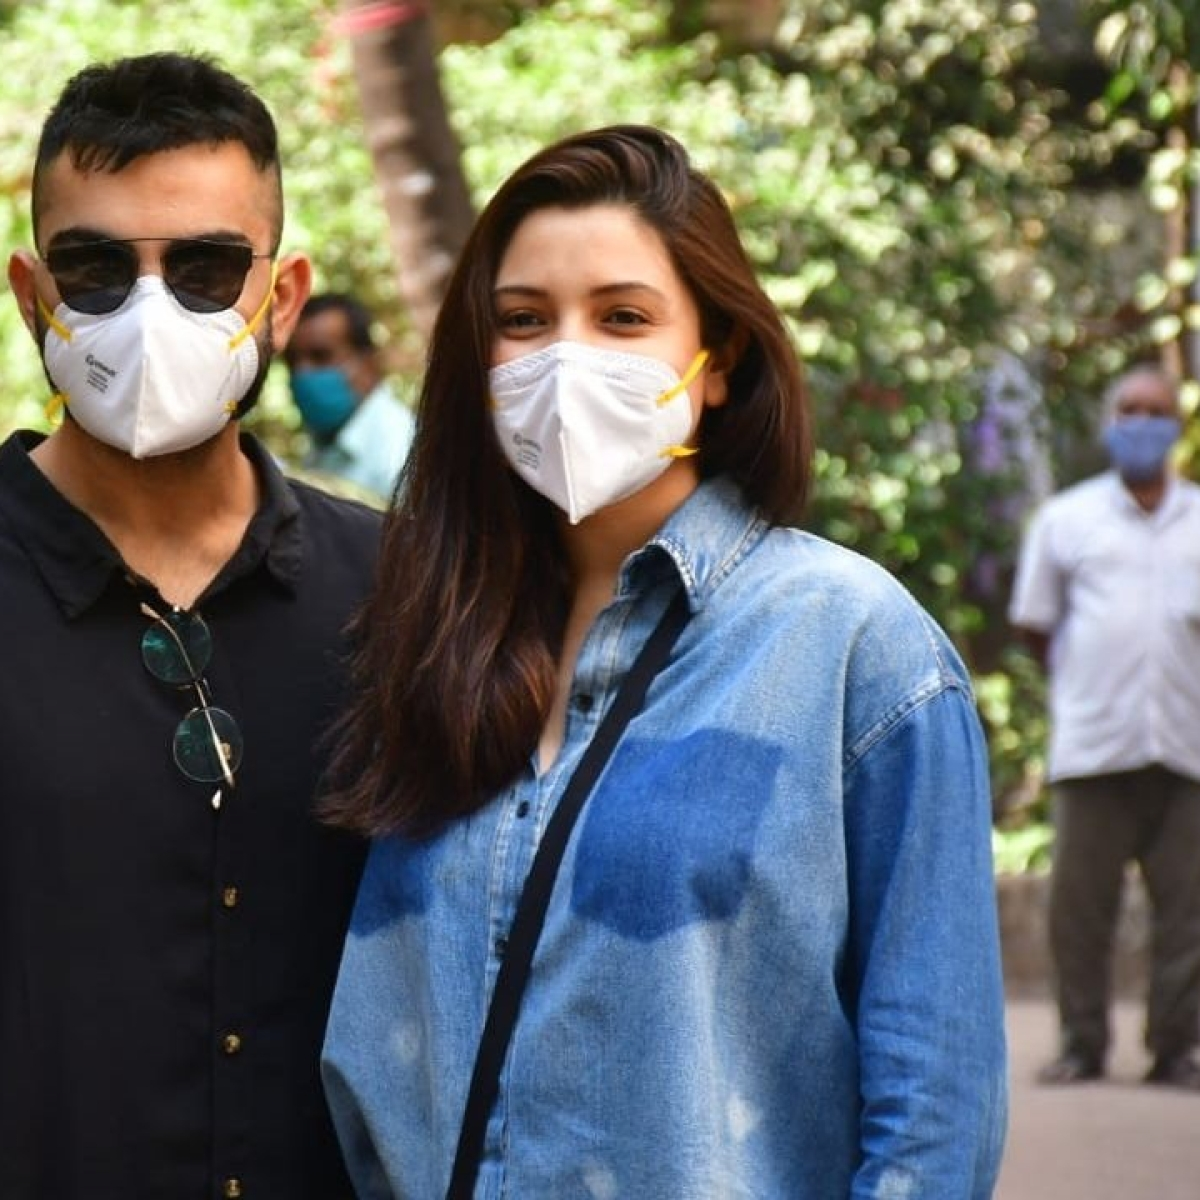 Anushka Sharma and Virat Kohli raise Rs 5 crore for COVID-19 relief, thank people